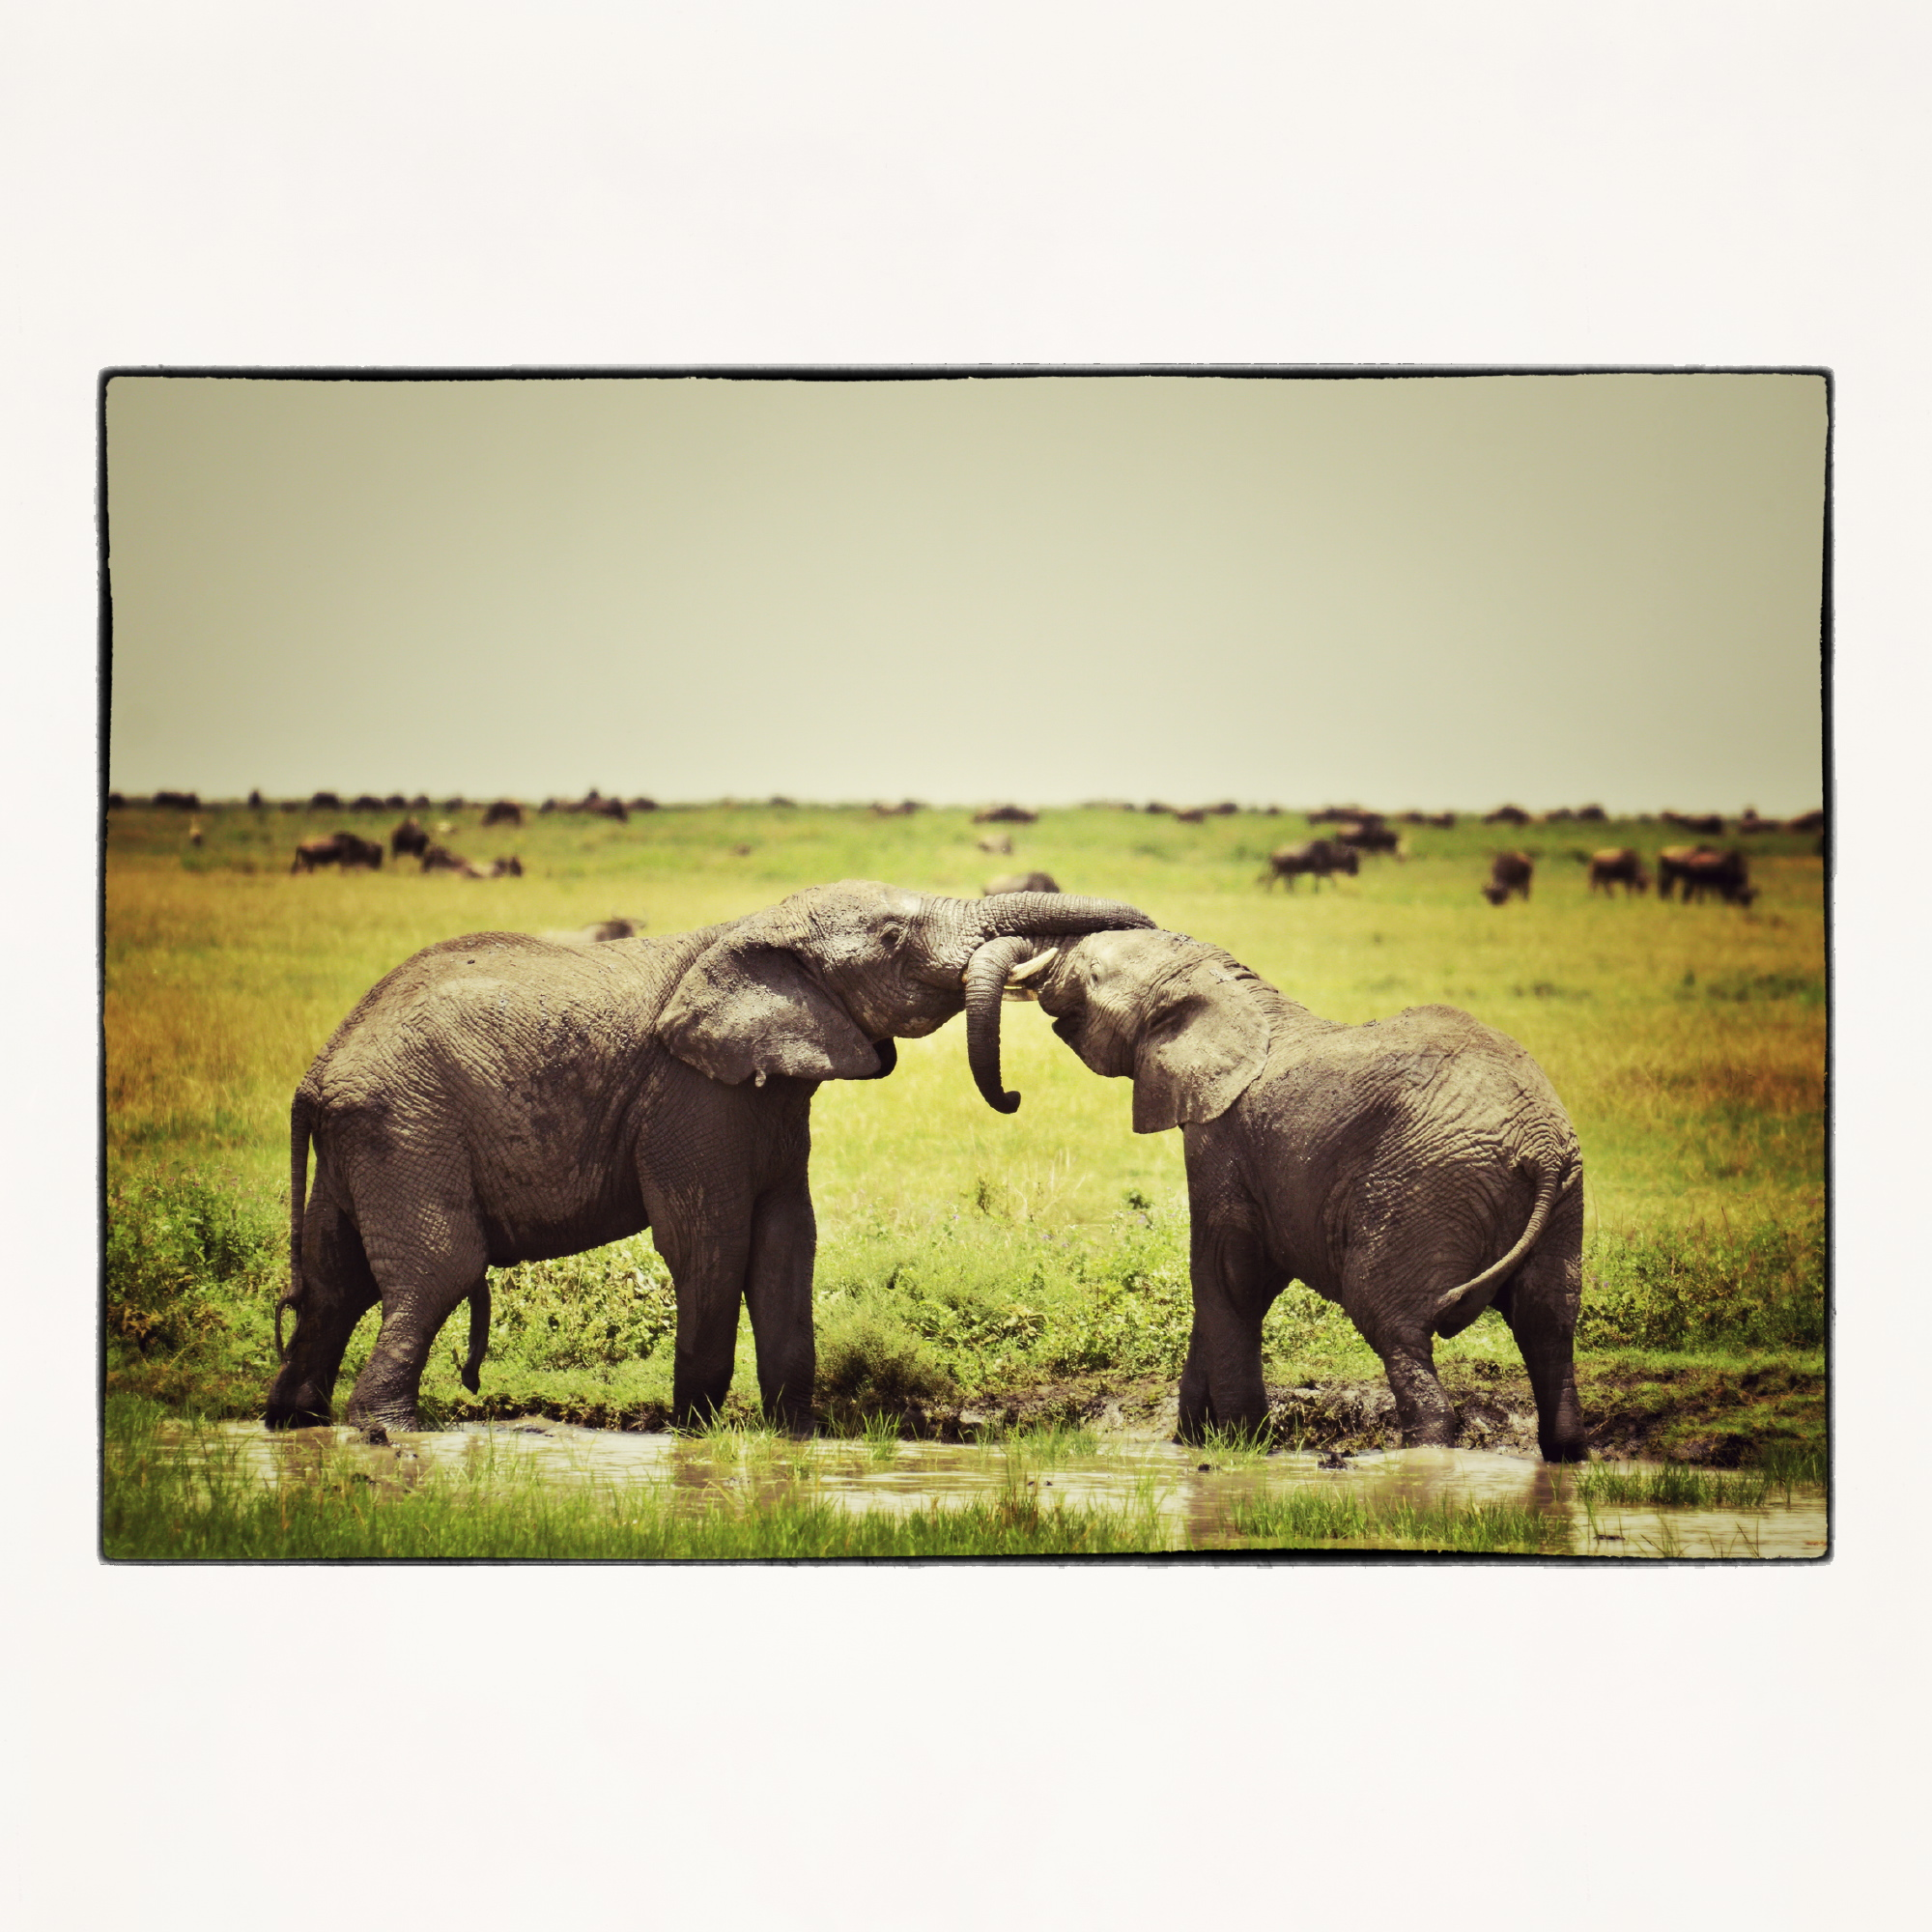 20x20 kissing elephant in Tanzania